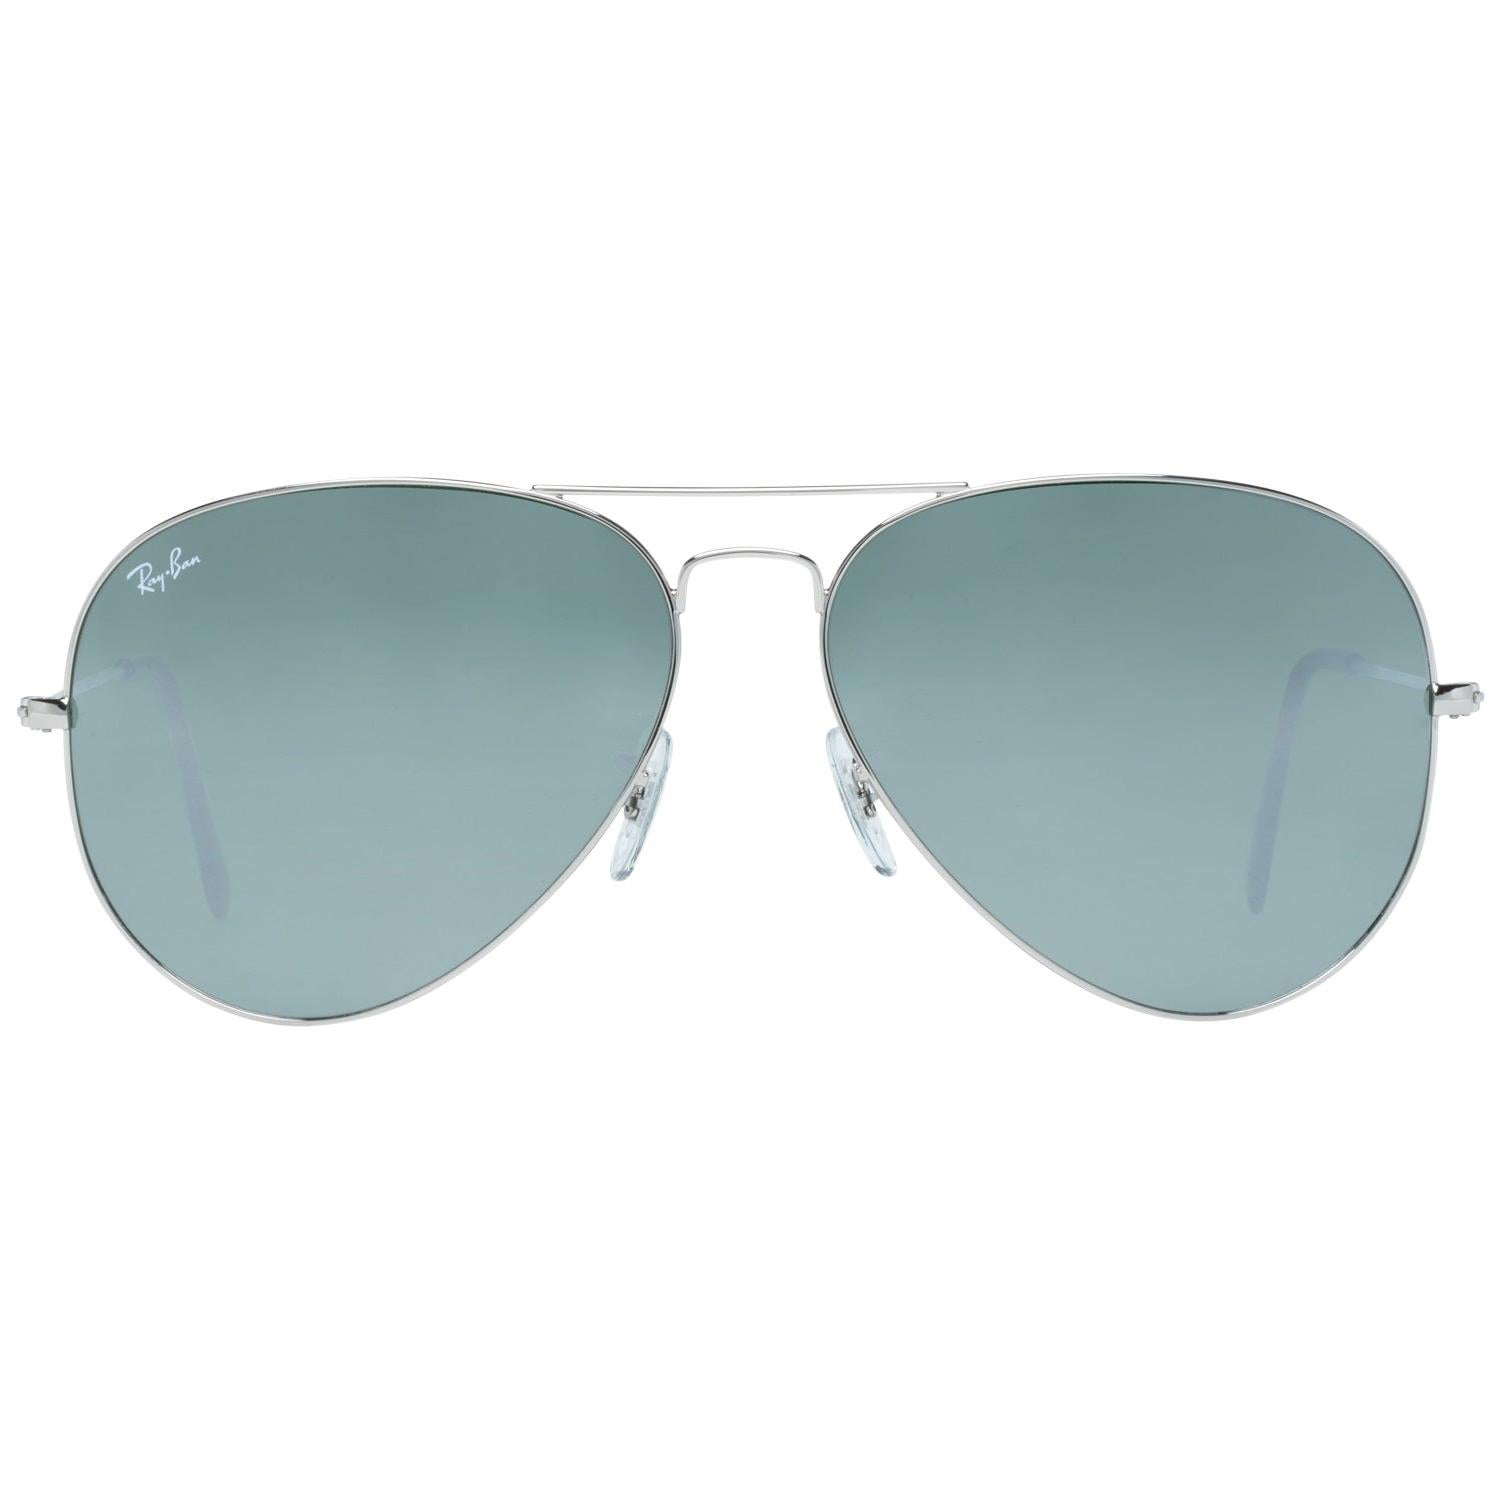 Ray-Ban Mint Unisex Silver Sunglasses RB3025 003/40 62 62-14-150 mm